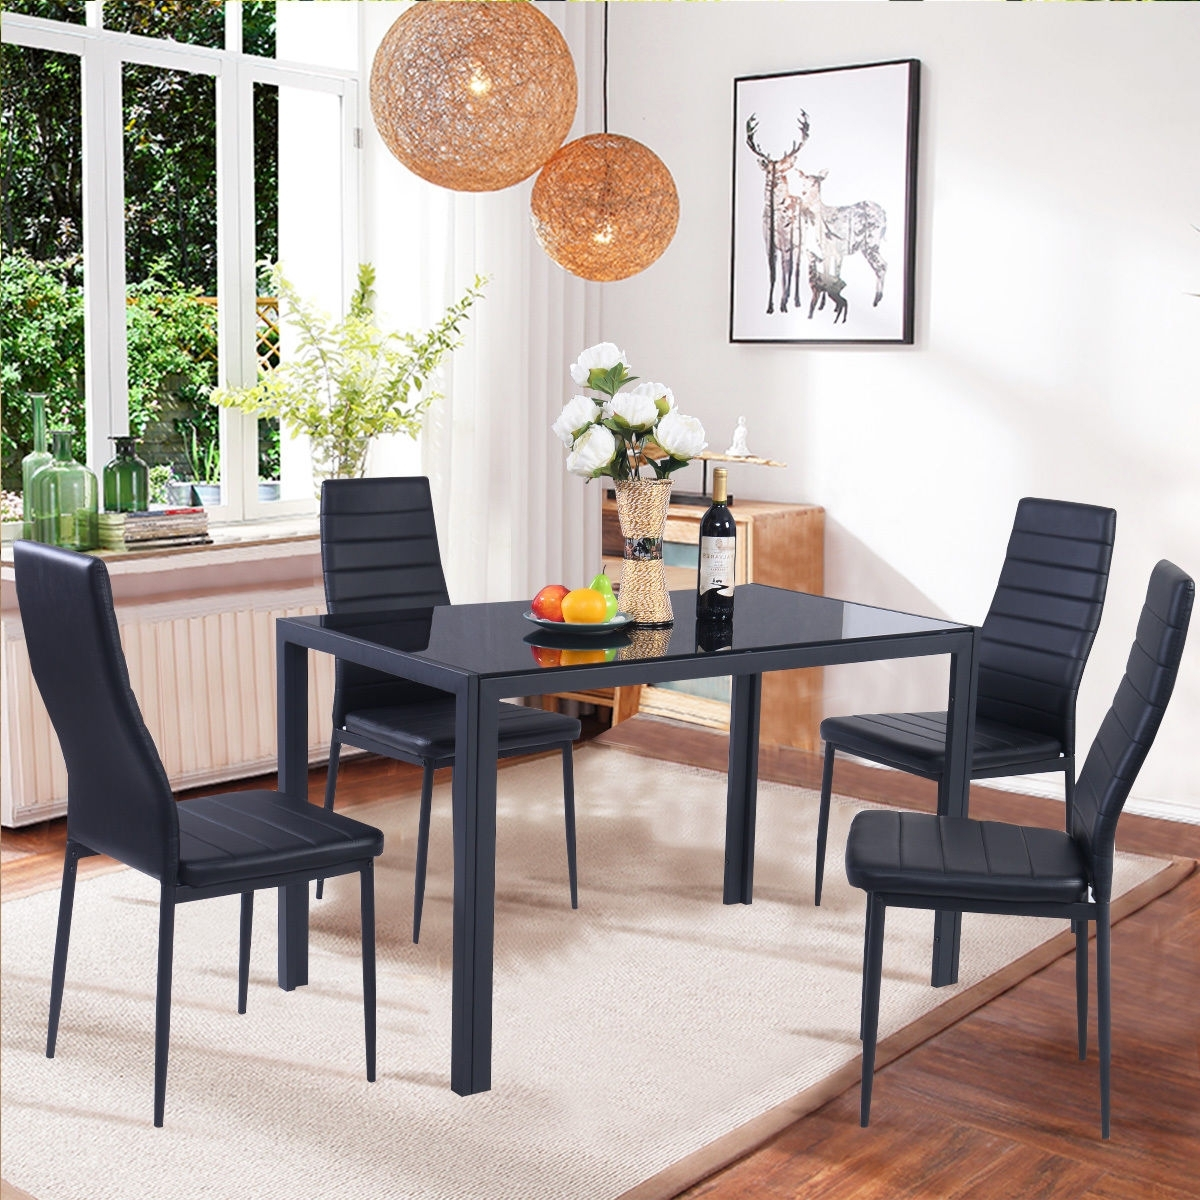 Dining Table Chair Sets With Preferred Costway 5 Piece Kitchen Dining Set Glass Metal Table And 4 Chairs (Gallery 5 of 25)